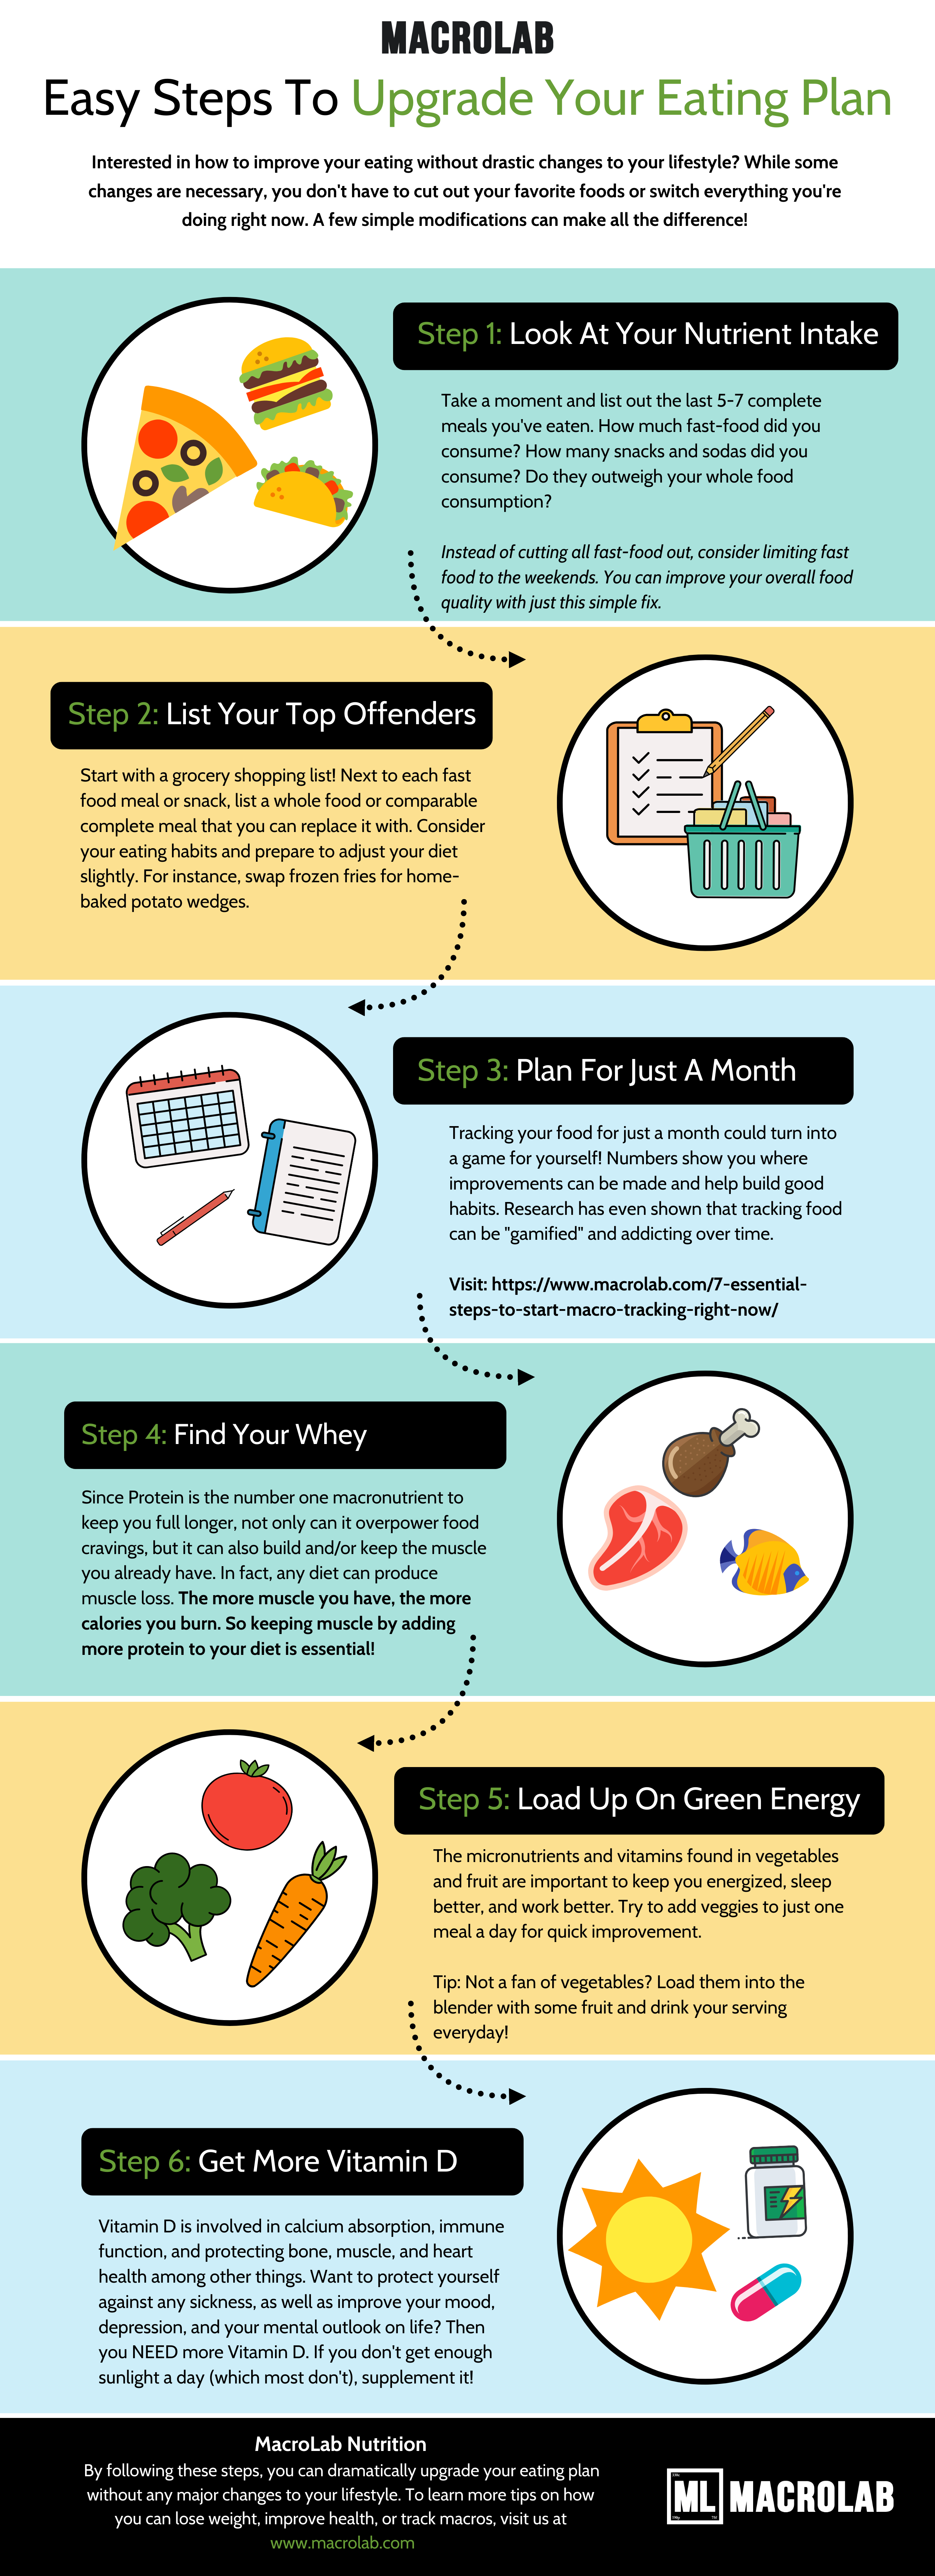 Steps To Upgrade Your Eating Plan